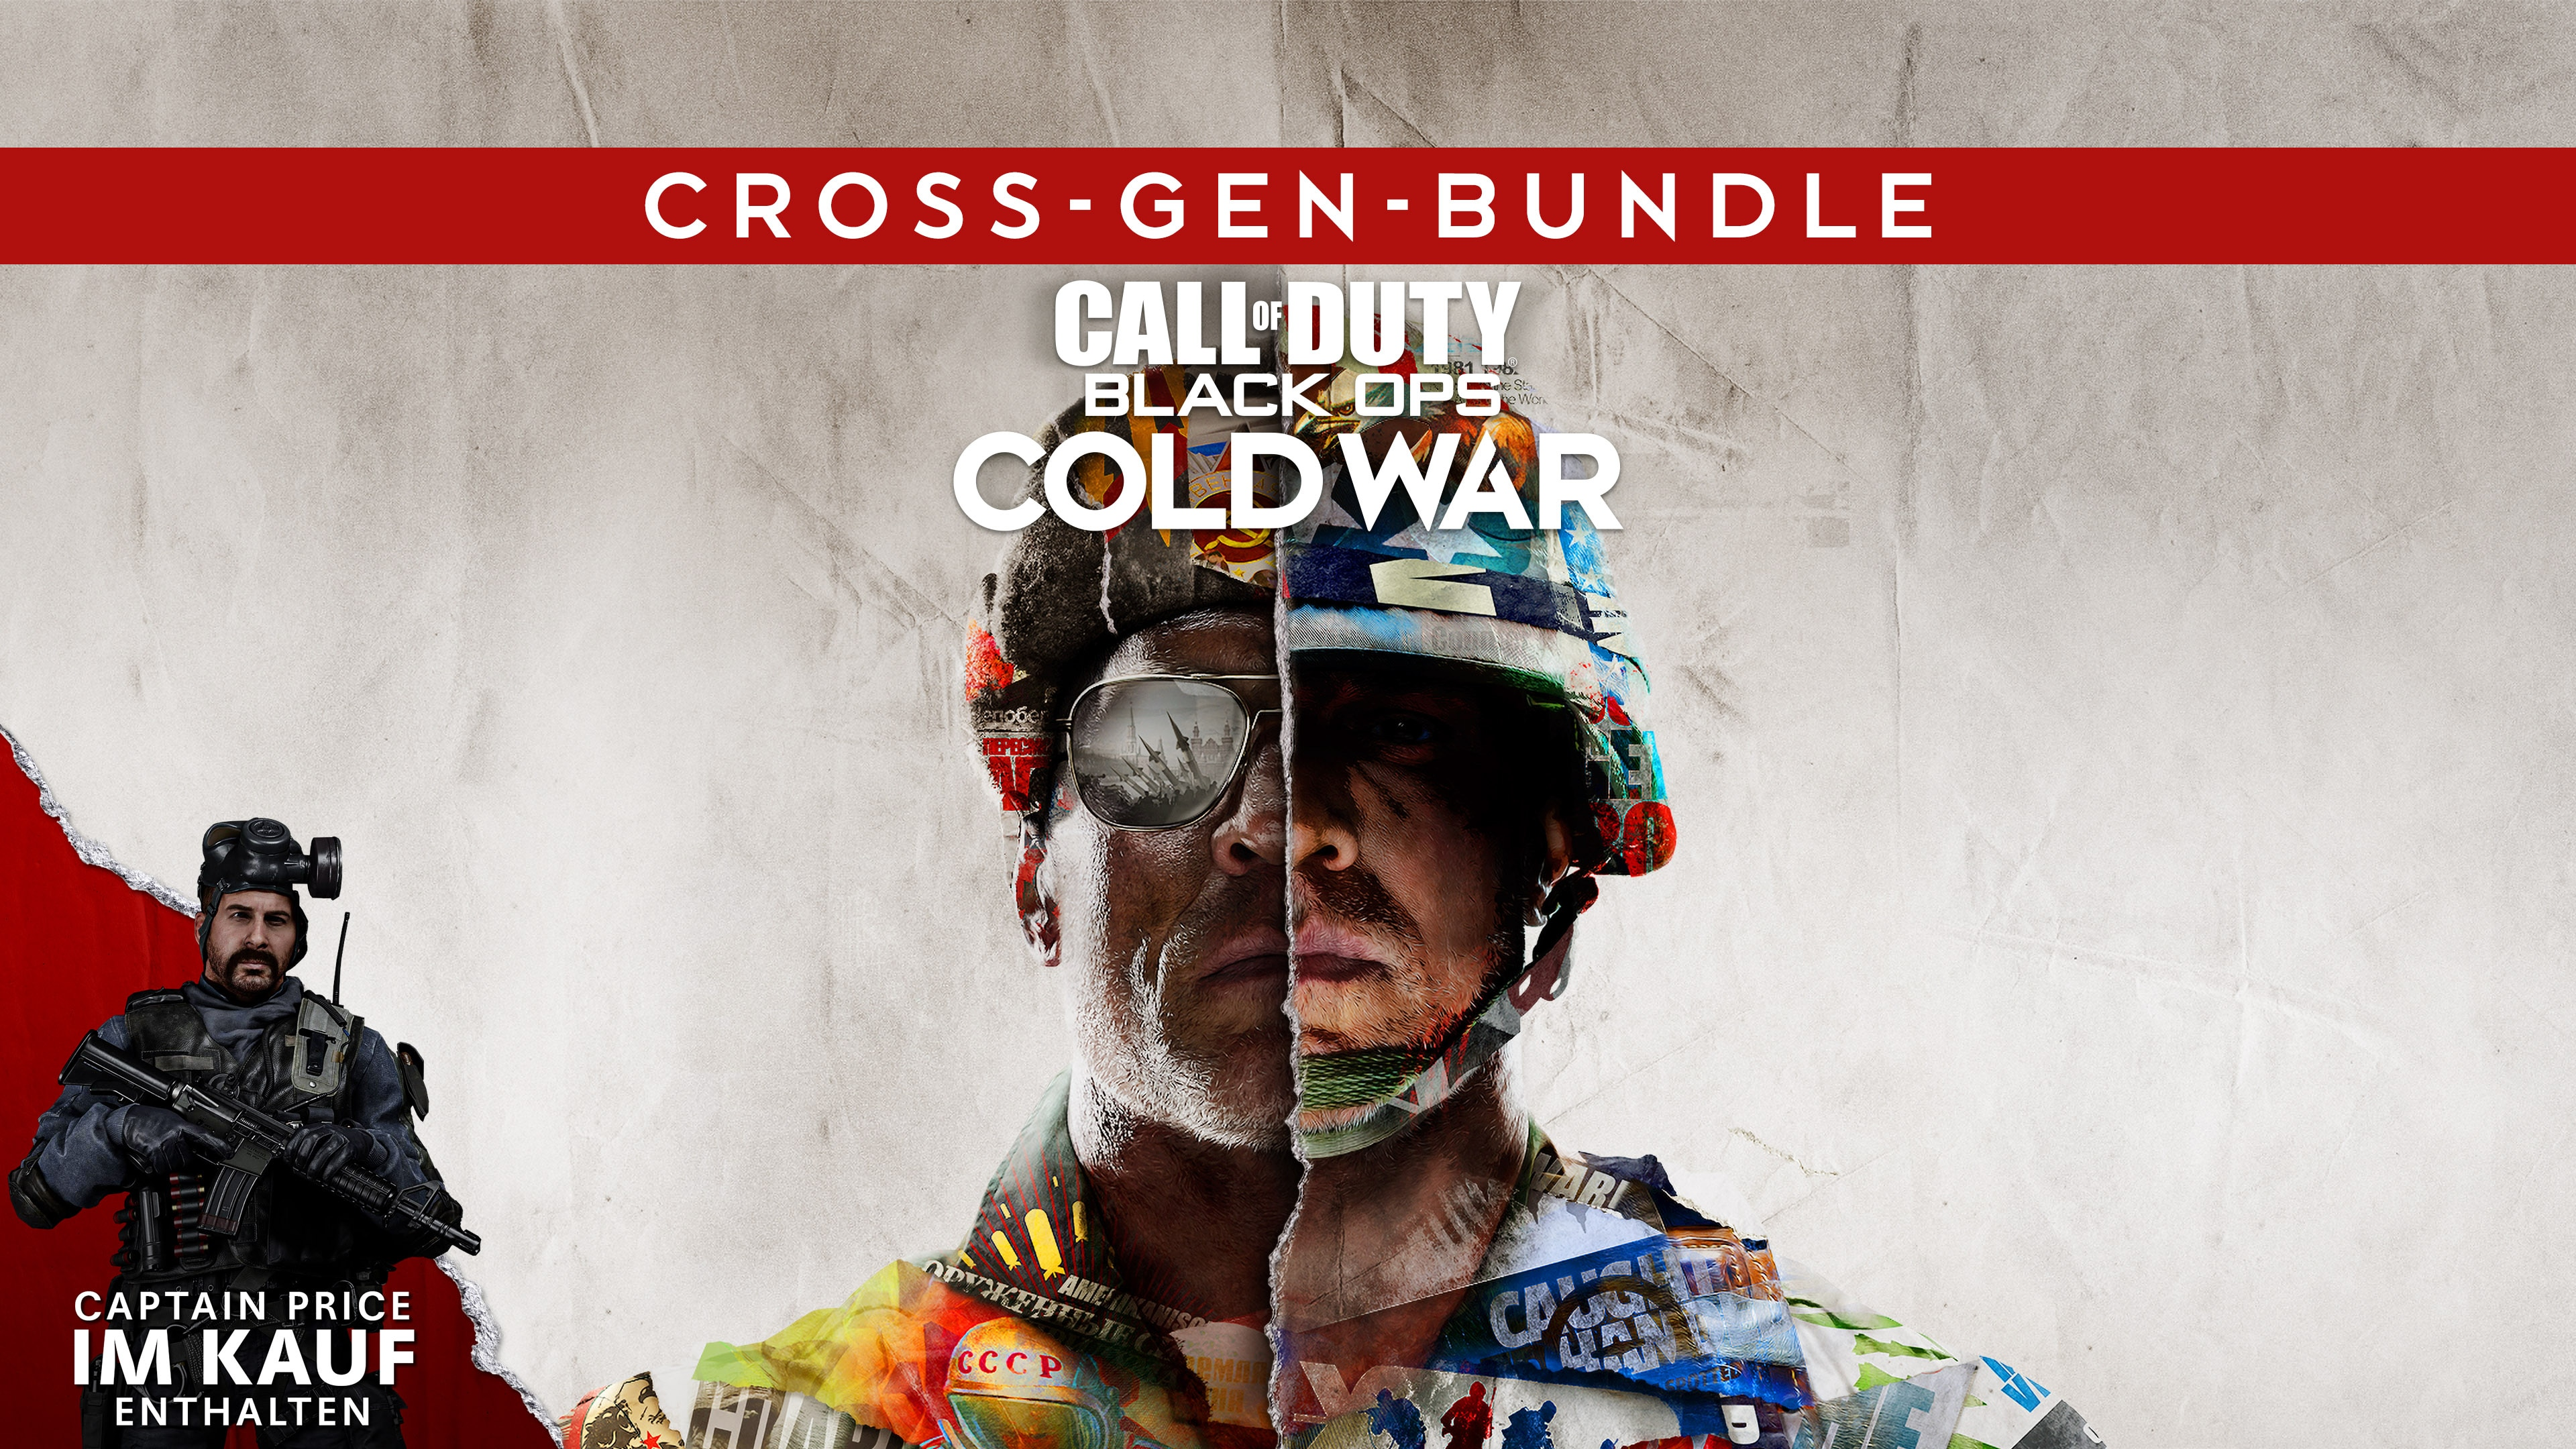 Crossgen-Bundle